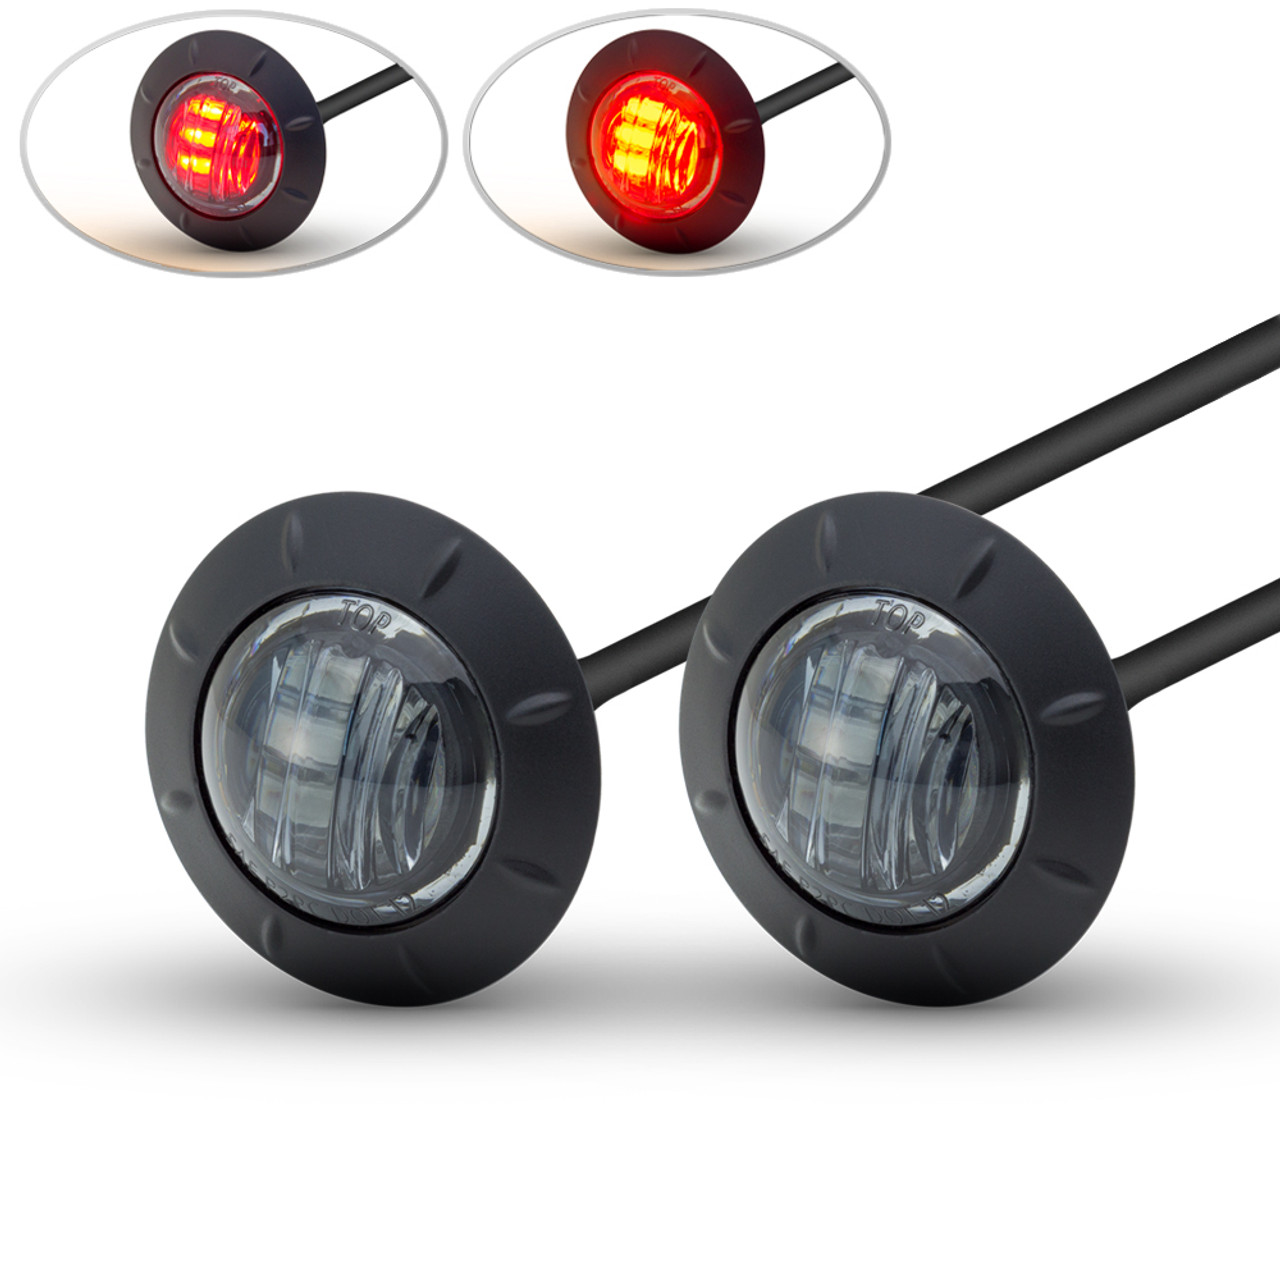 Pair Of 2 50mm Cafe Racer Flush Mount Led Stop Tail Lights With Light Wiring Diagram Smoked